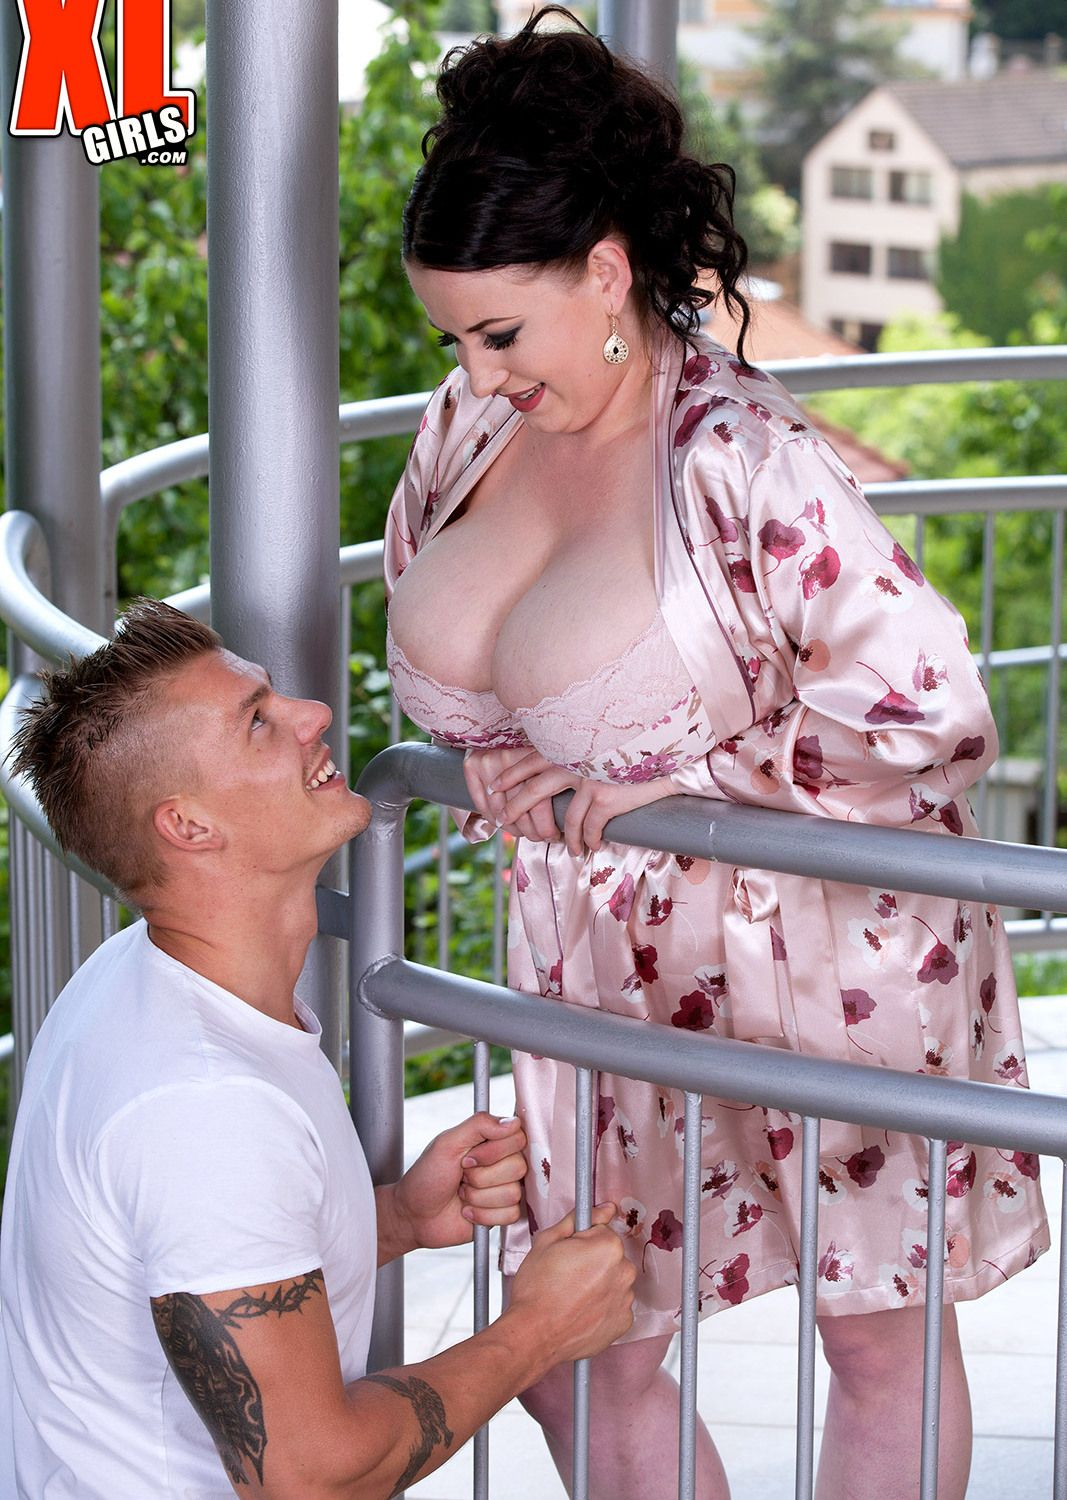 Anna Beck Scoreland Pretty bbw anna beck in bangin´ ms. beck - 05 | big boobs butts